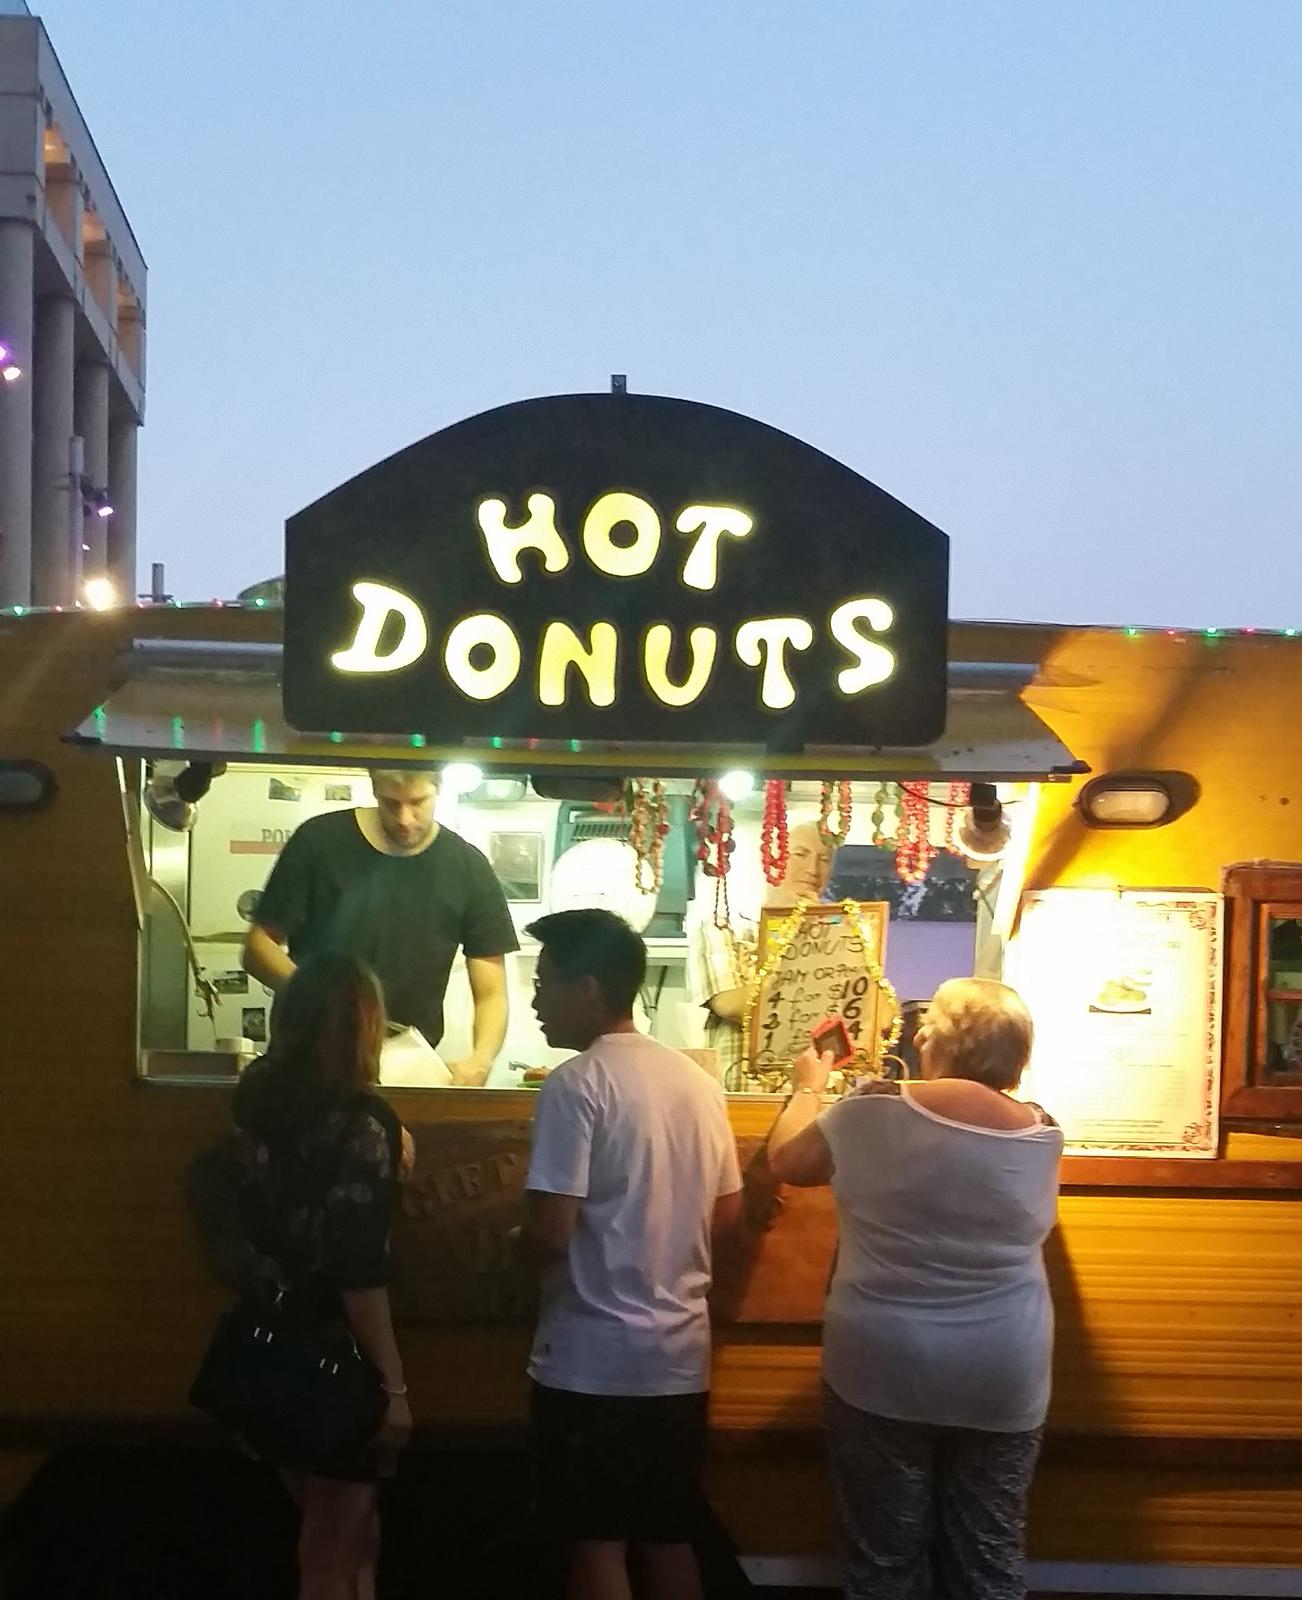 Hot Donuts sign